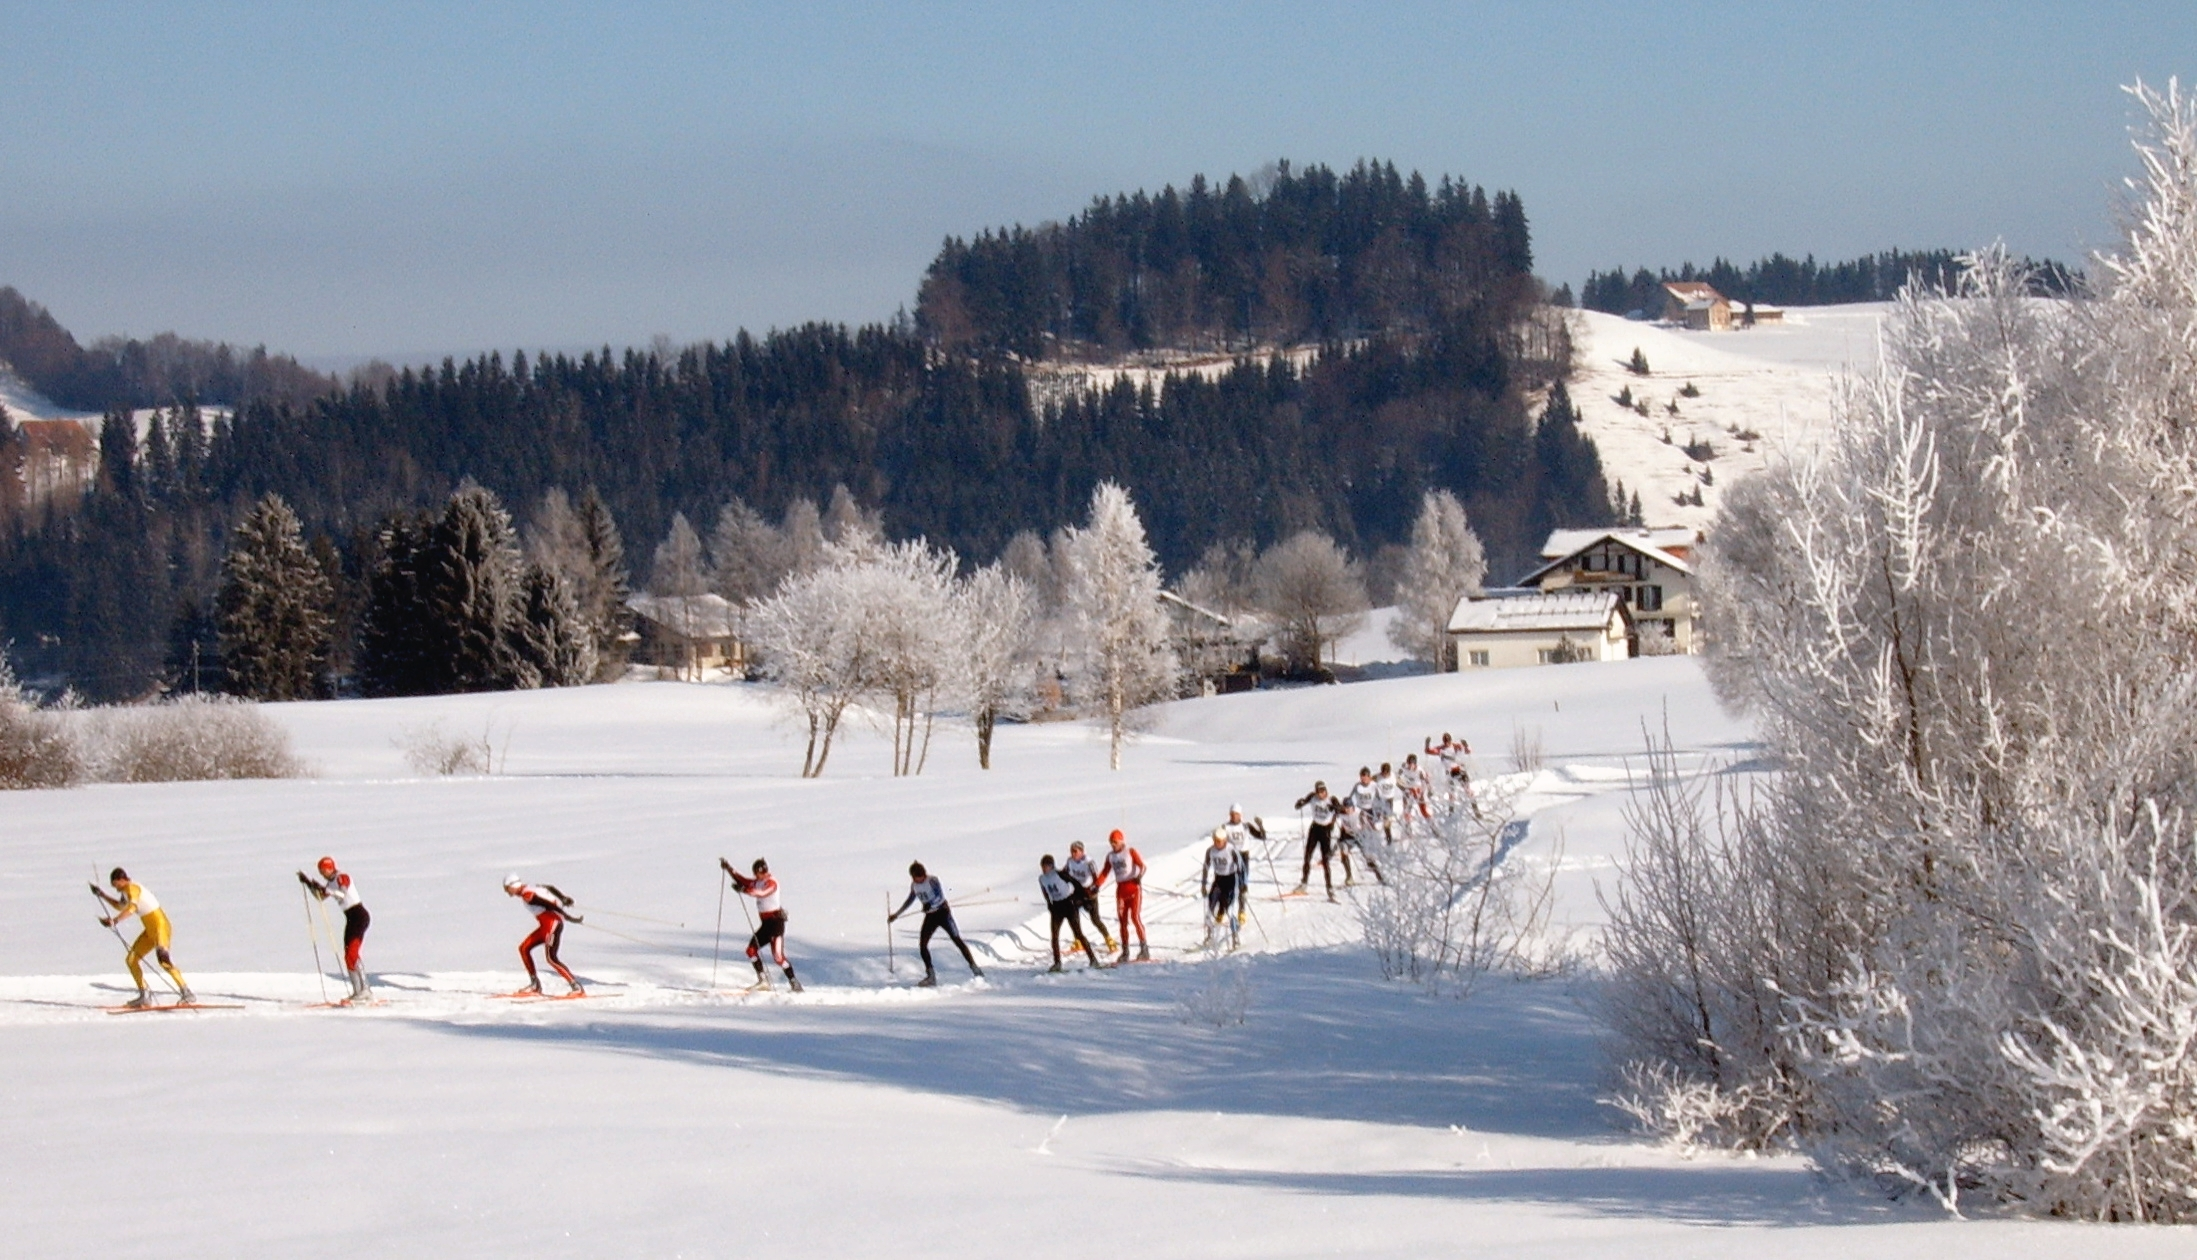 Cross-country skiing (skating style) in Einsiedeln, Switzerland.